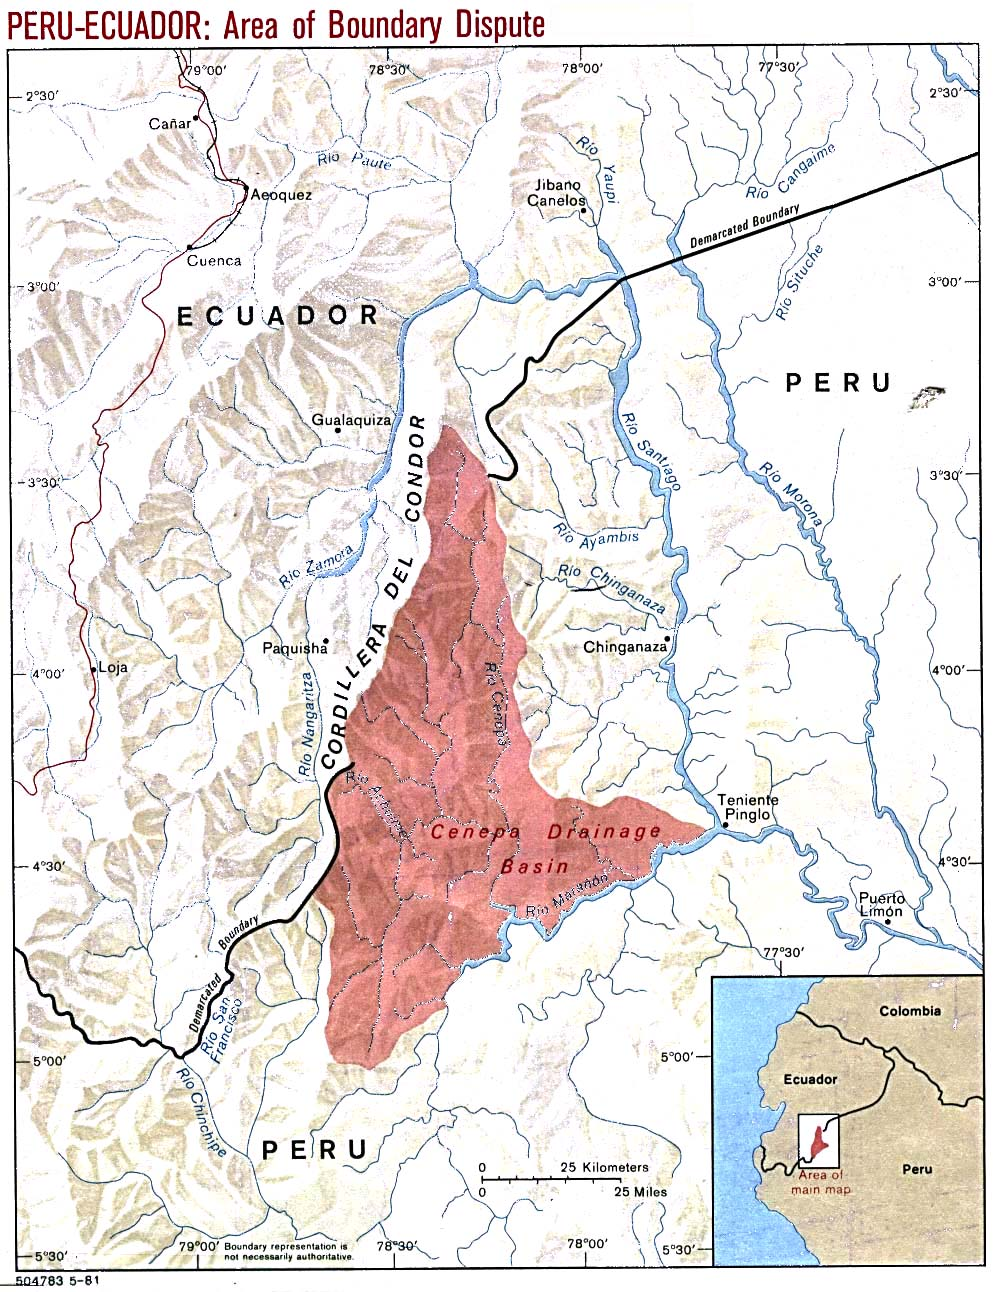 Peru - Ecuador Area of Boundary Dispute Map 1981